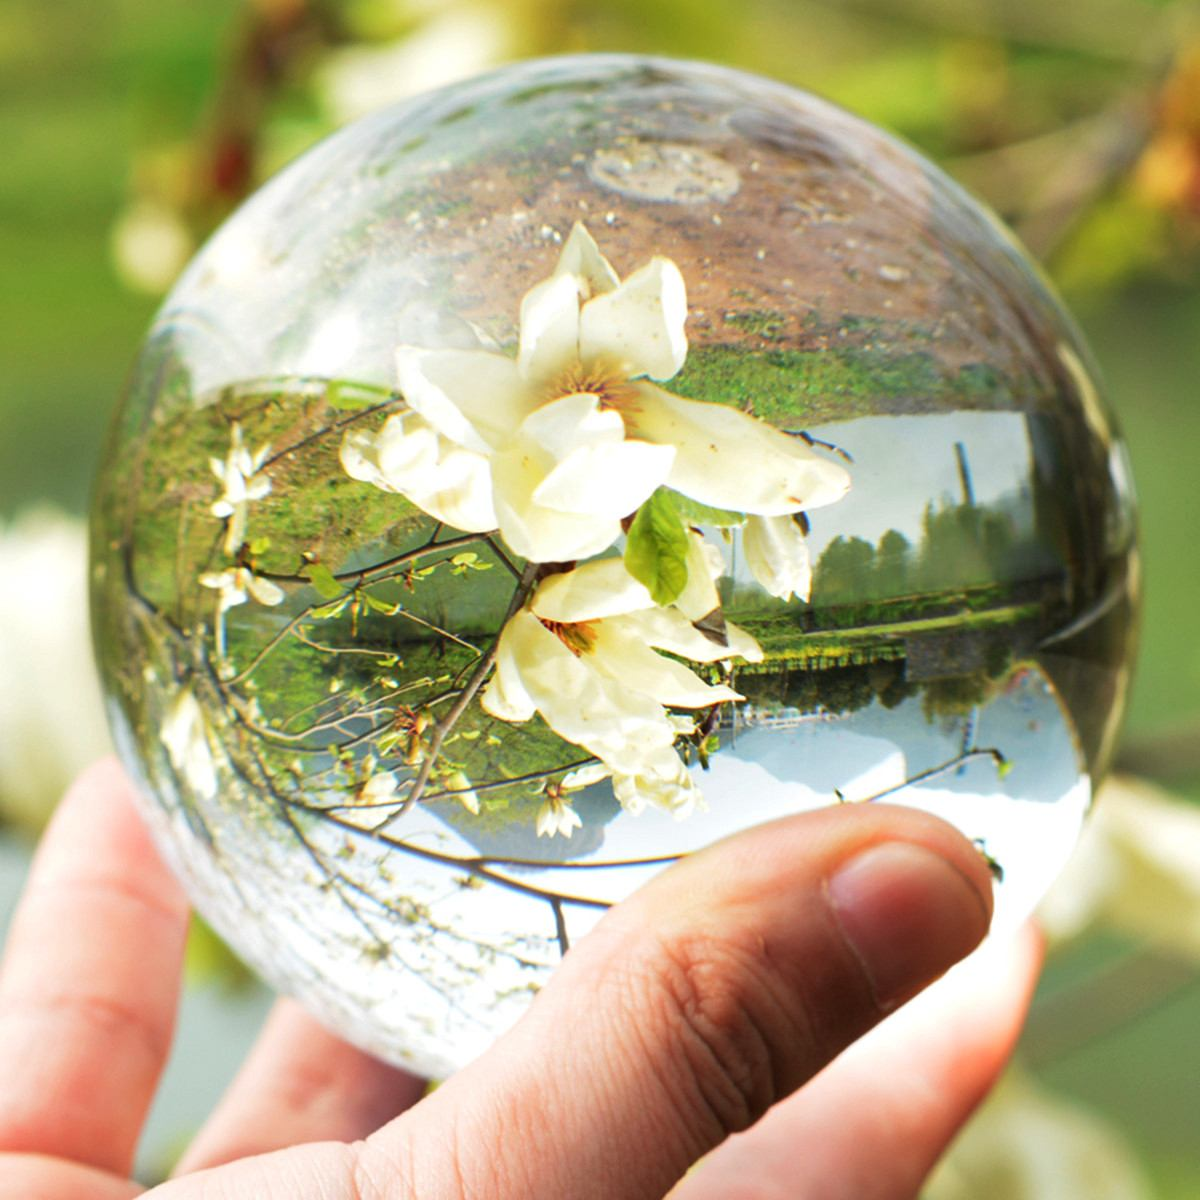 80/100/110mm Crystal Ball Photography Spheres Round Clear Natural Glass Balls Travel Take Pictures Decorative Balls